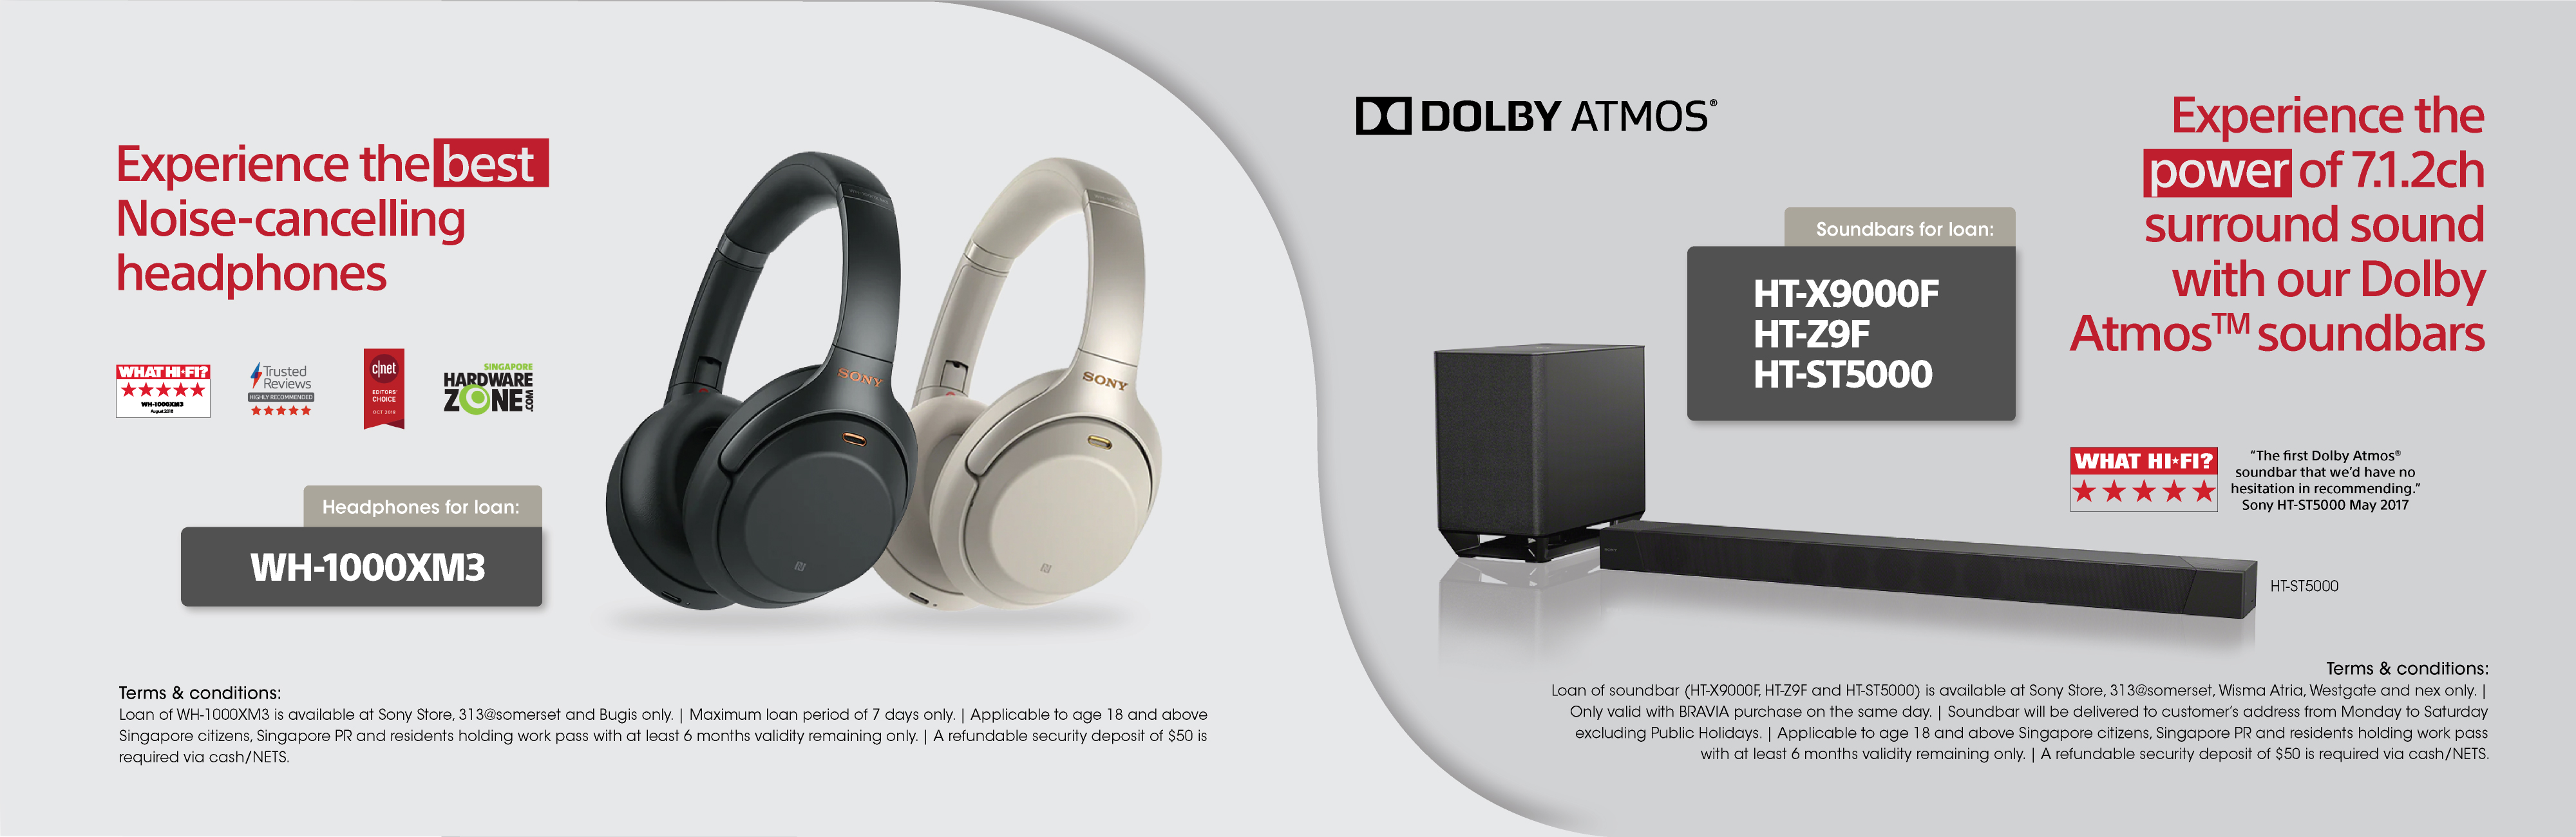 You can now experience the best noise-cancelling headphones and powerful Dolby Atmos Soundbar at the comfort of your home! Available only at selected Sony Store.